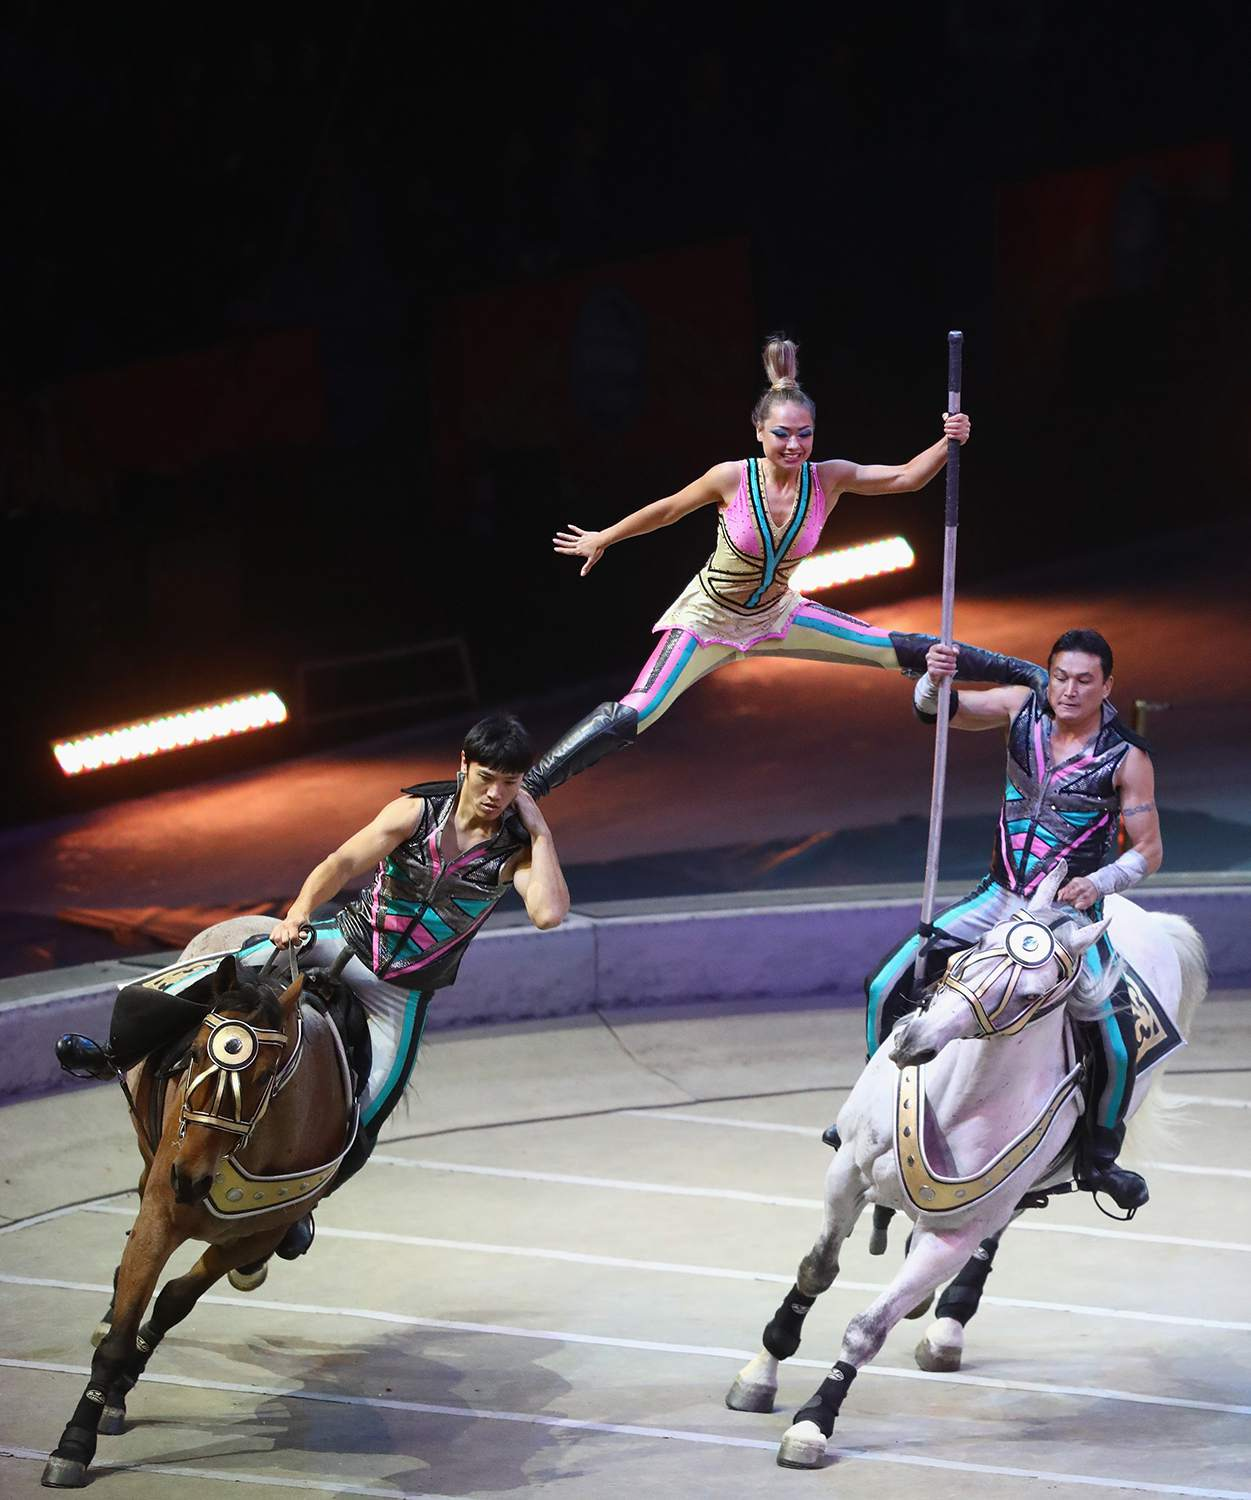 Performers during a live circus show, a woman balancing between two men riding horses.